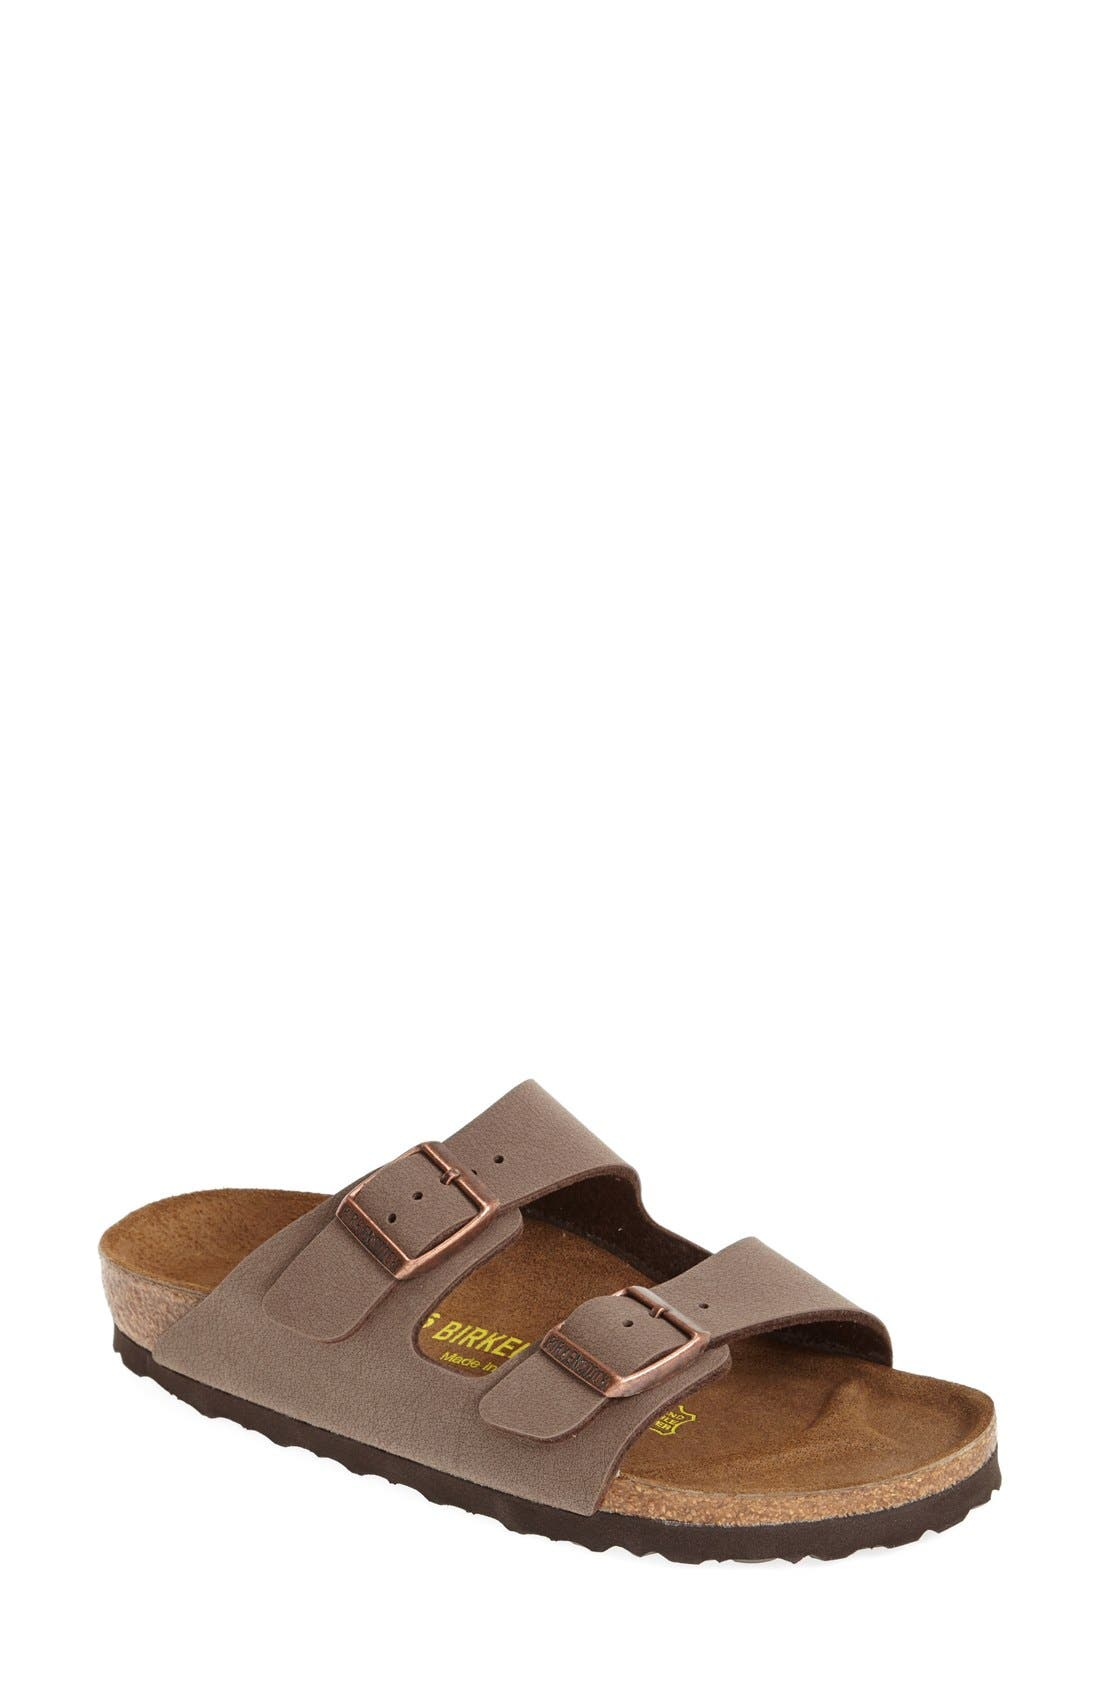 Birkenstock Arizona Birko-Flor Sandal, Brown